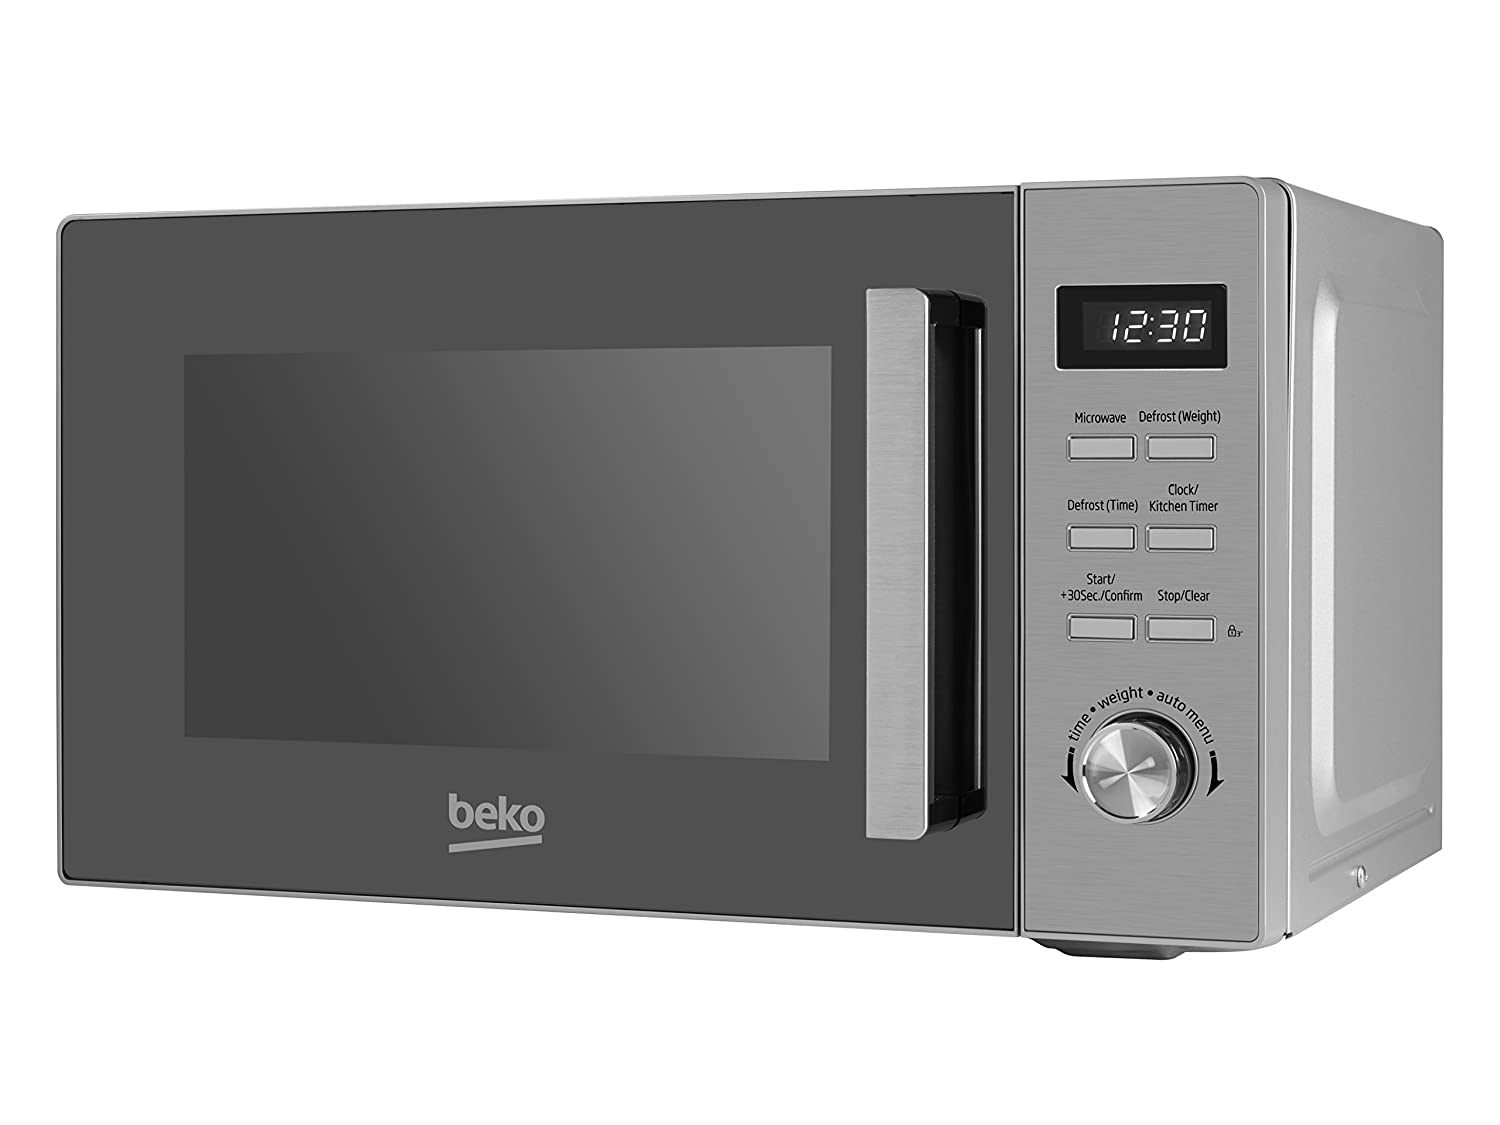 Beko MGF20210X Action Line 20 Litre Grill Microwave, 800 W, 20 liters, Stainless Steel Beko plc